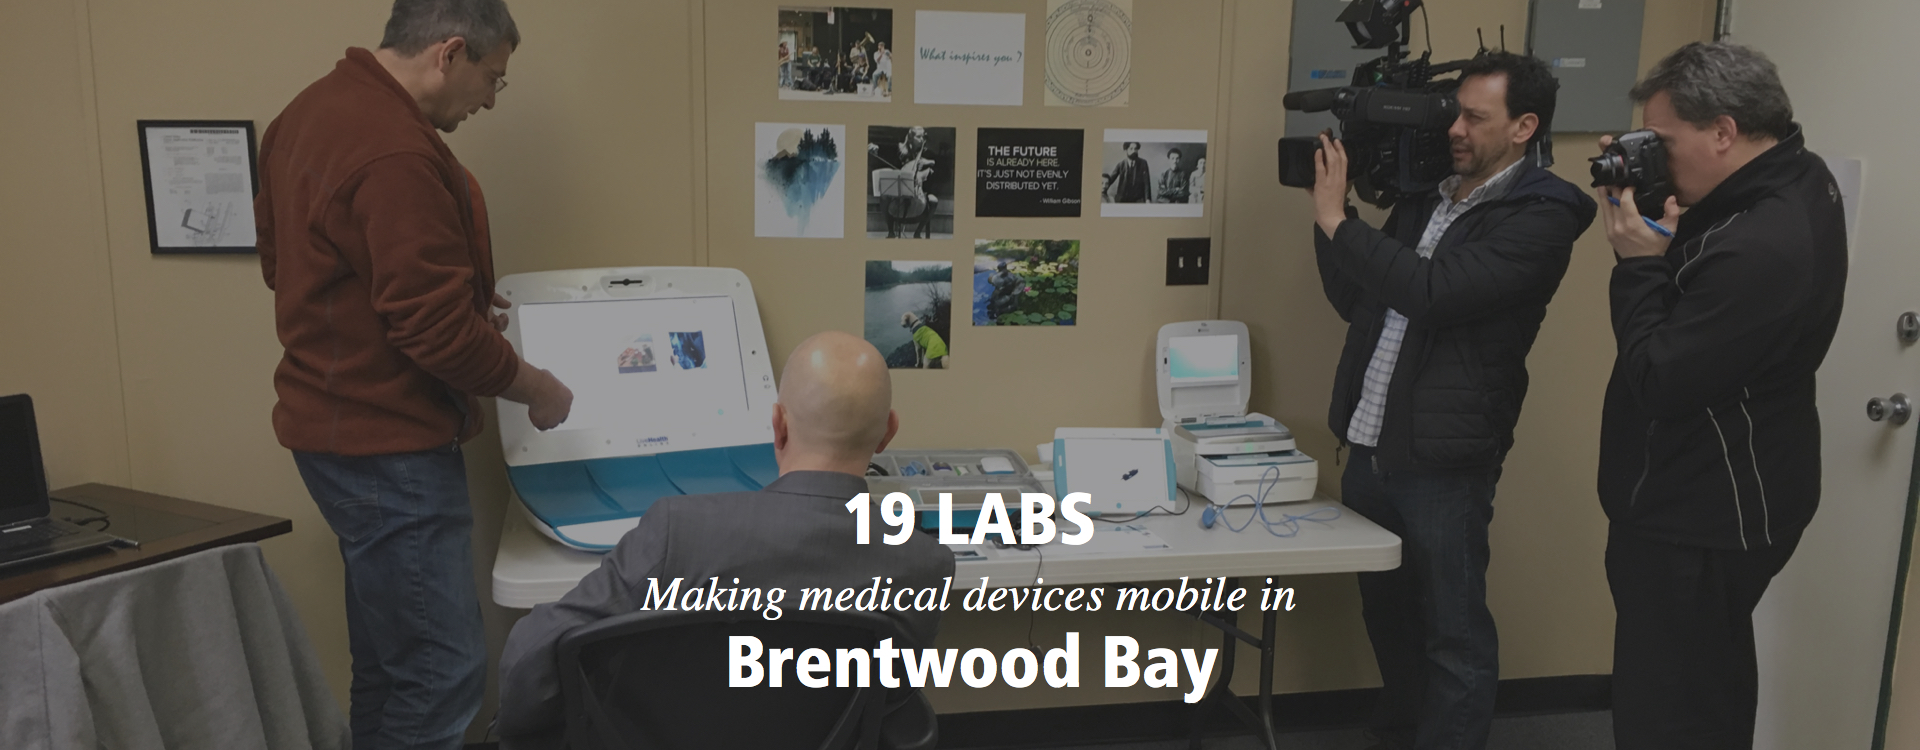 19 Labs making medical devices mobile in Brentwood Bay